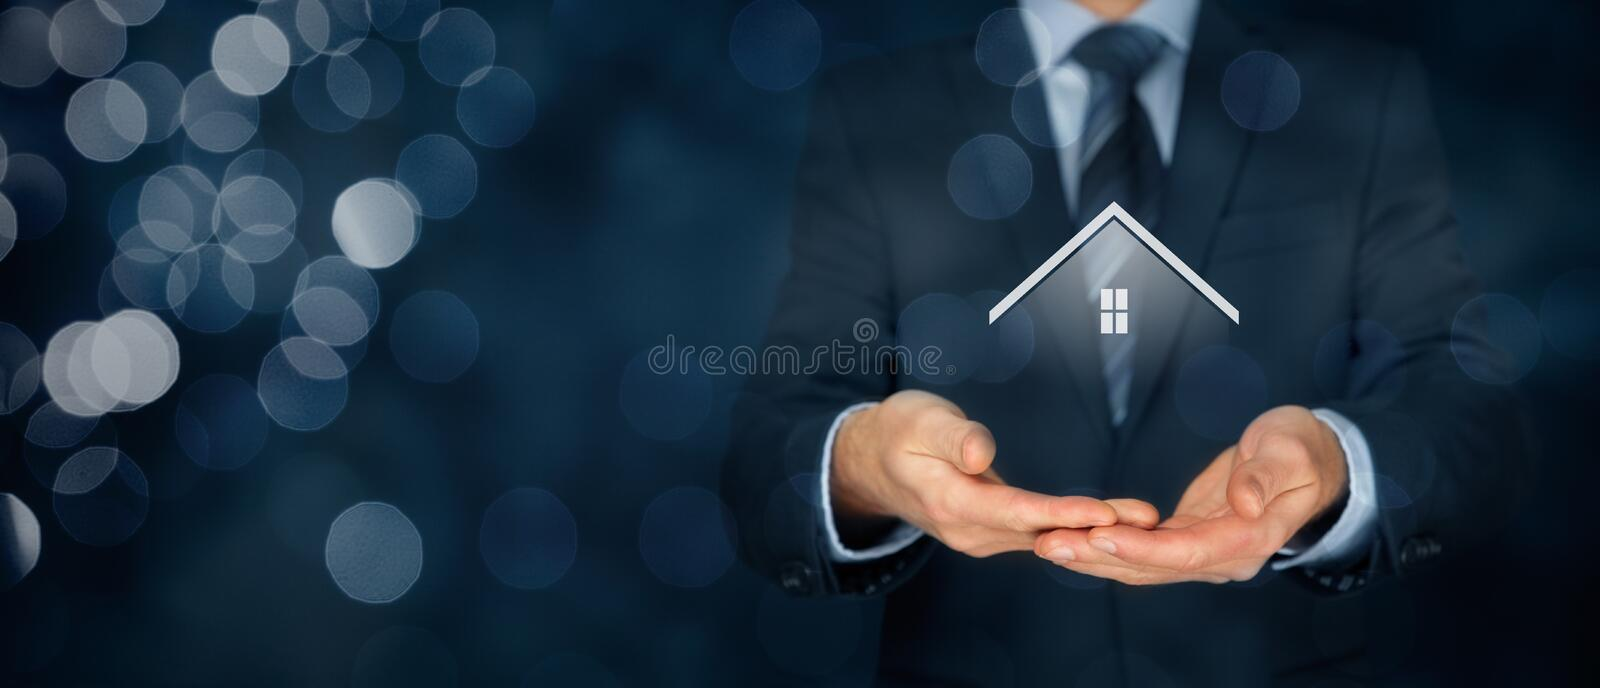 Real estate agent. Offer house. Property insurance and security concept. Wide banner composition with bokeh background royalty free stock photo